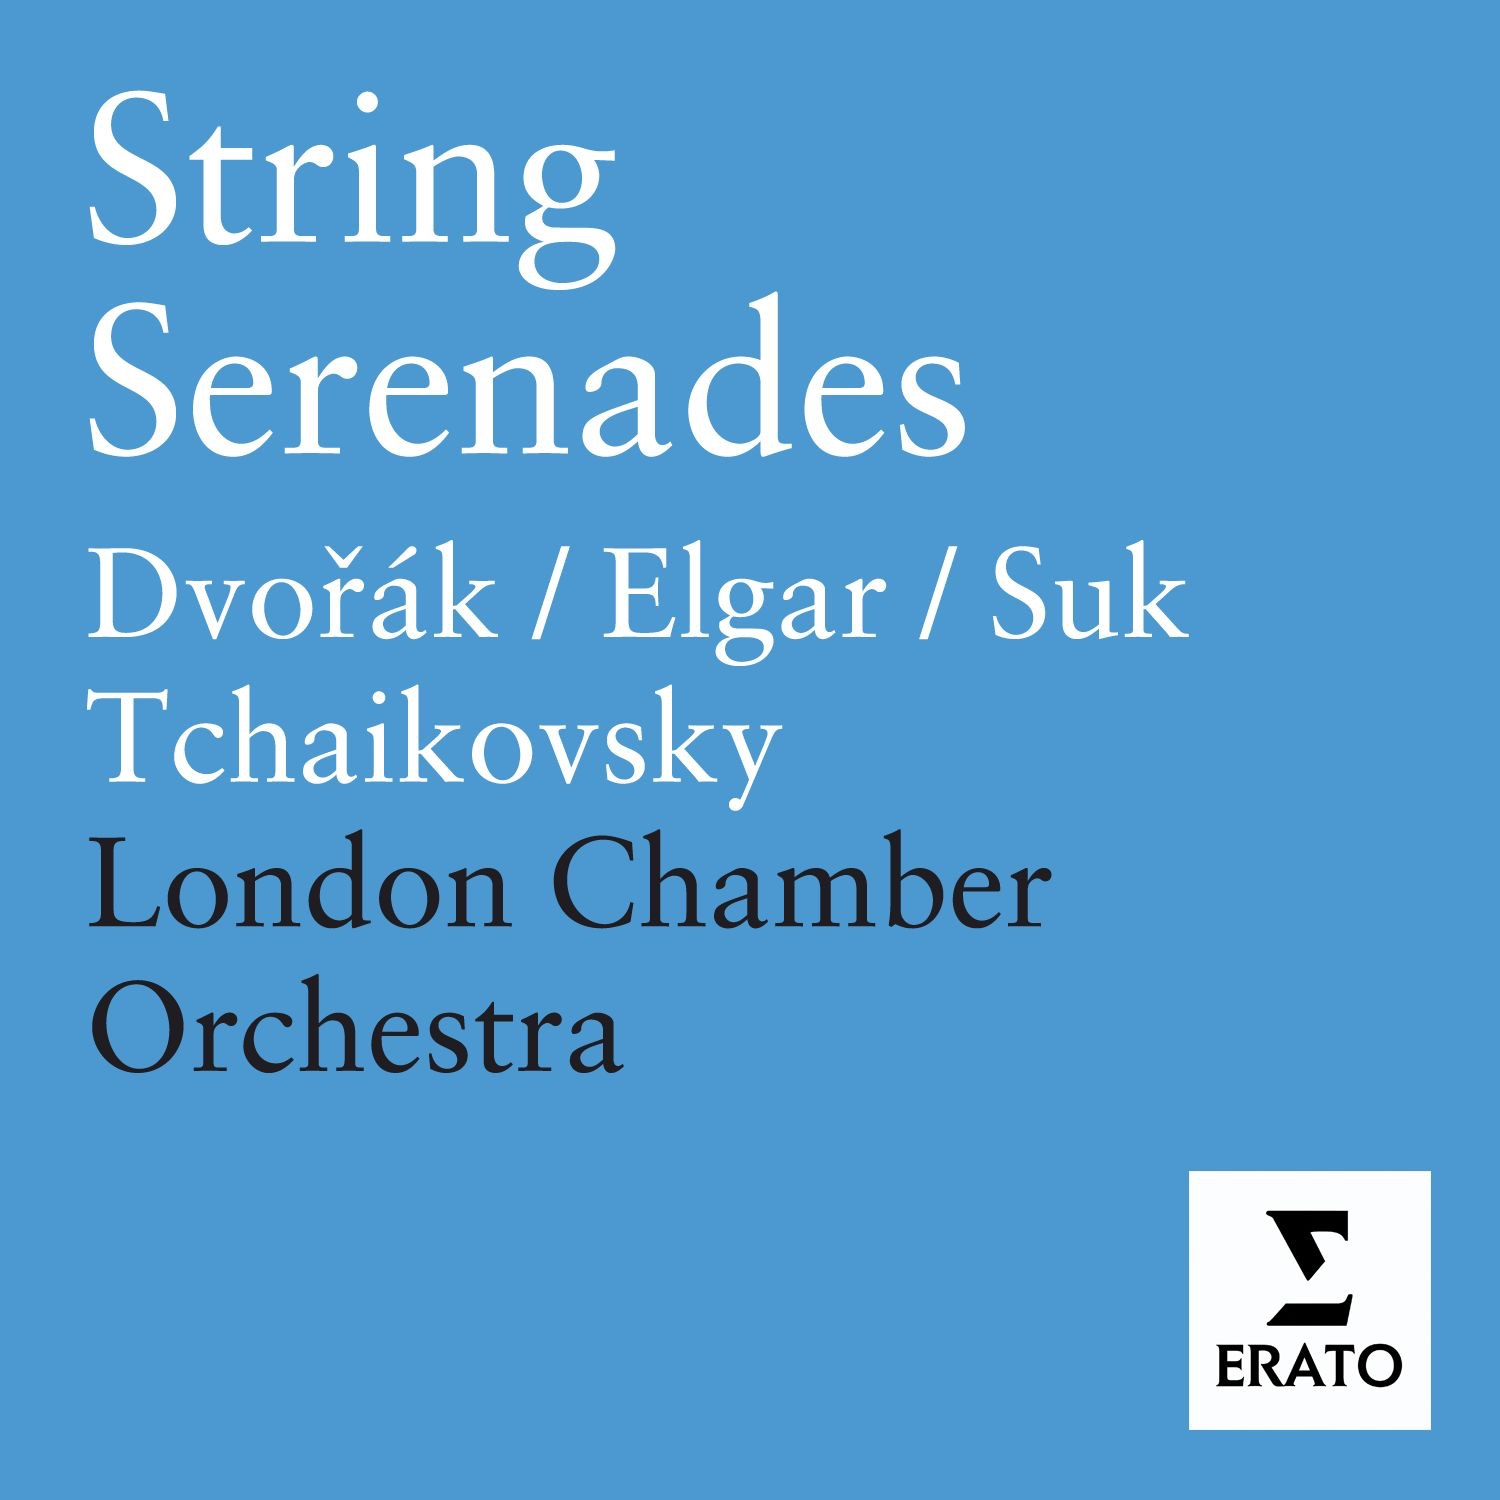 Serenade for Strings in E Minor, Op. 20: I. Allegro piacevole